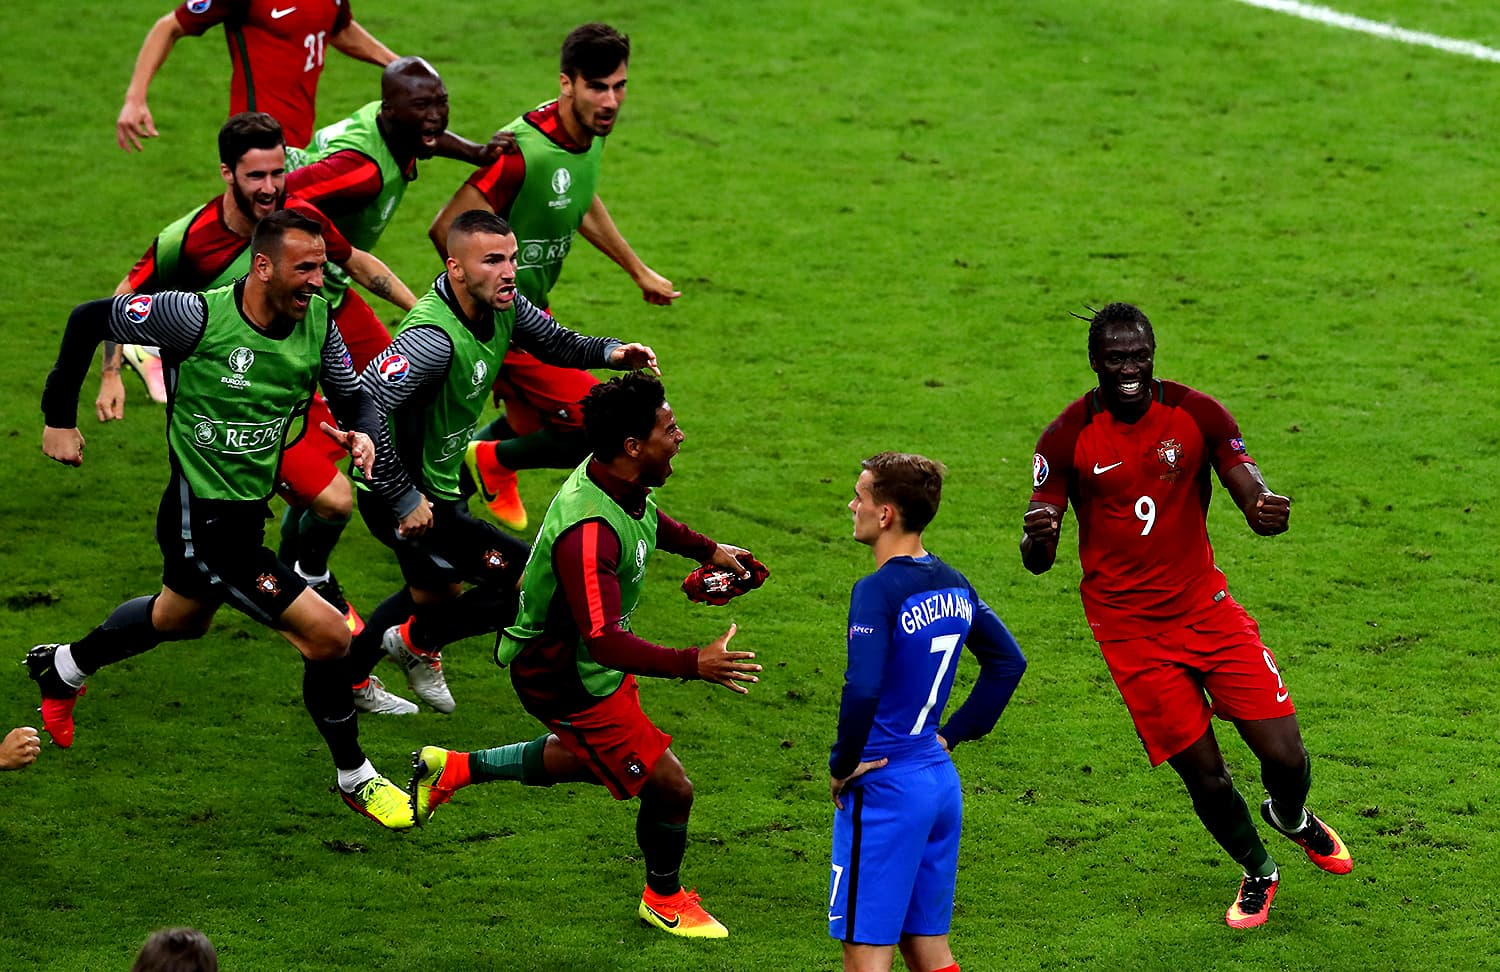 Portugal players run onto the pitch from the bench in celebration as France's Antoine Griezmann looks on. — AP